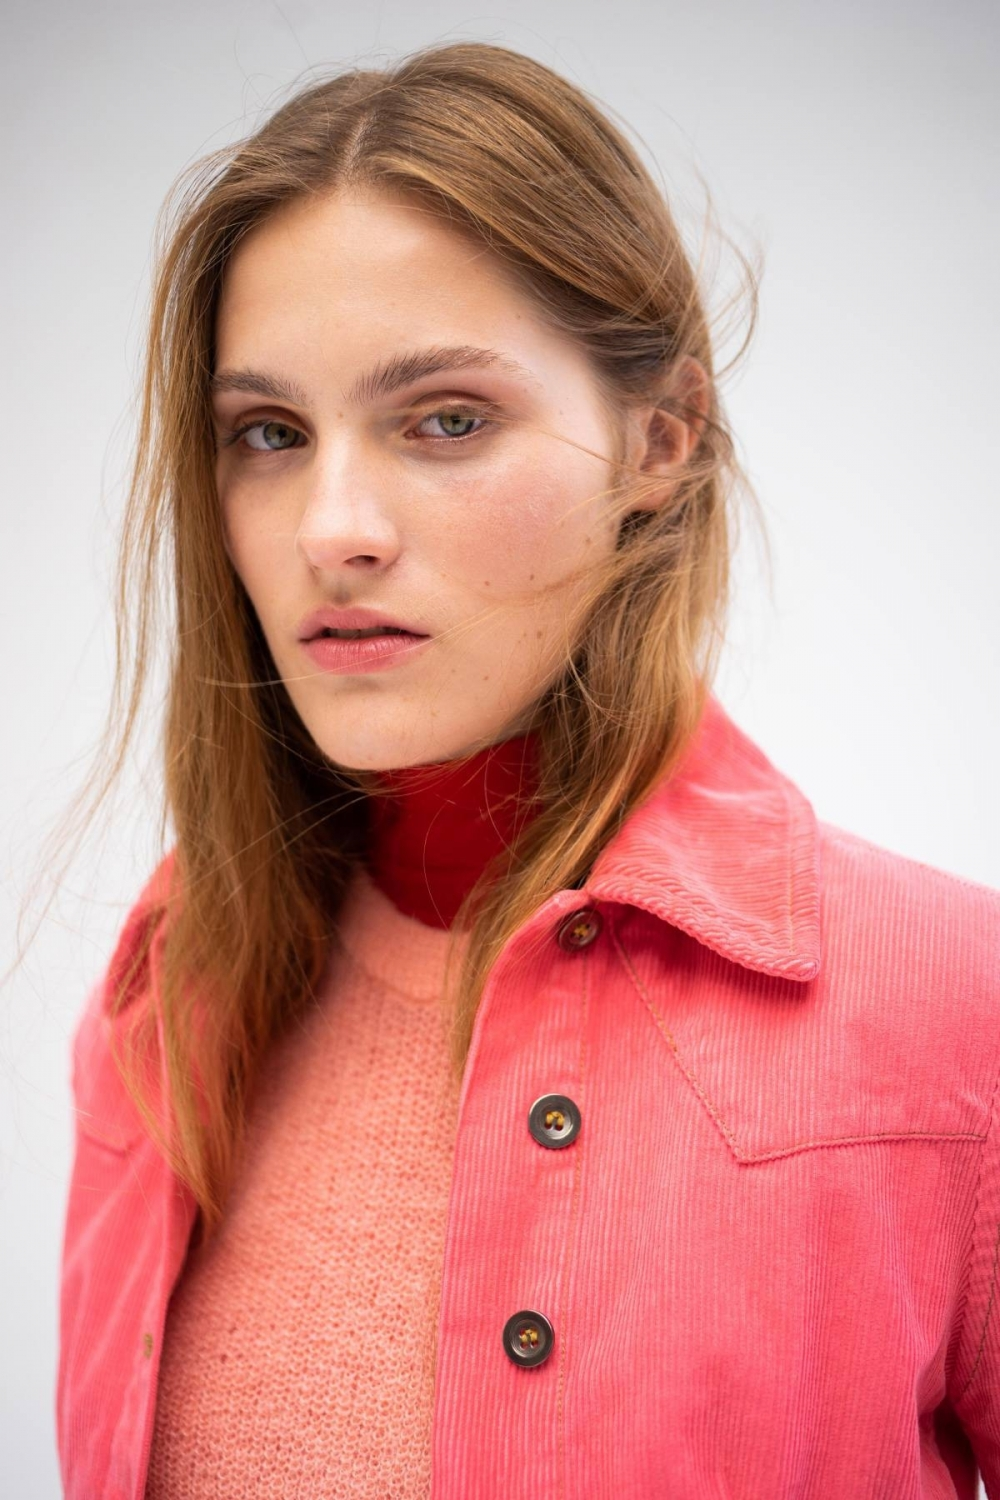 THE HOT PINK CORDUROY JACKET